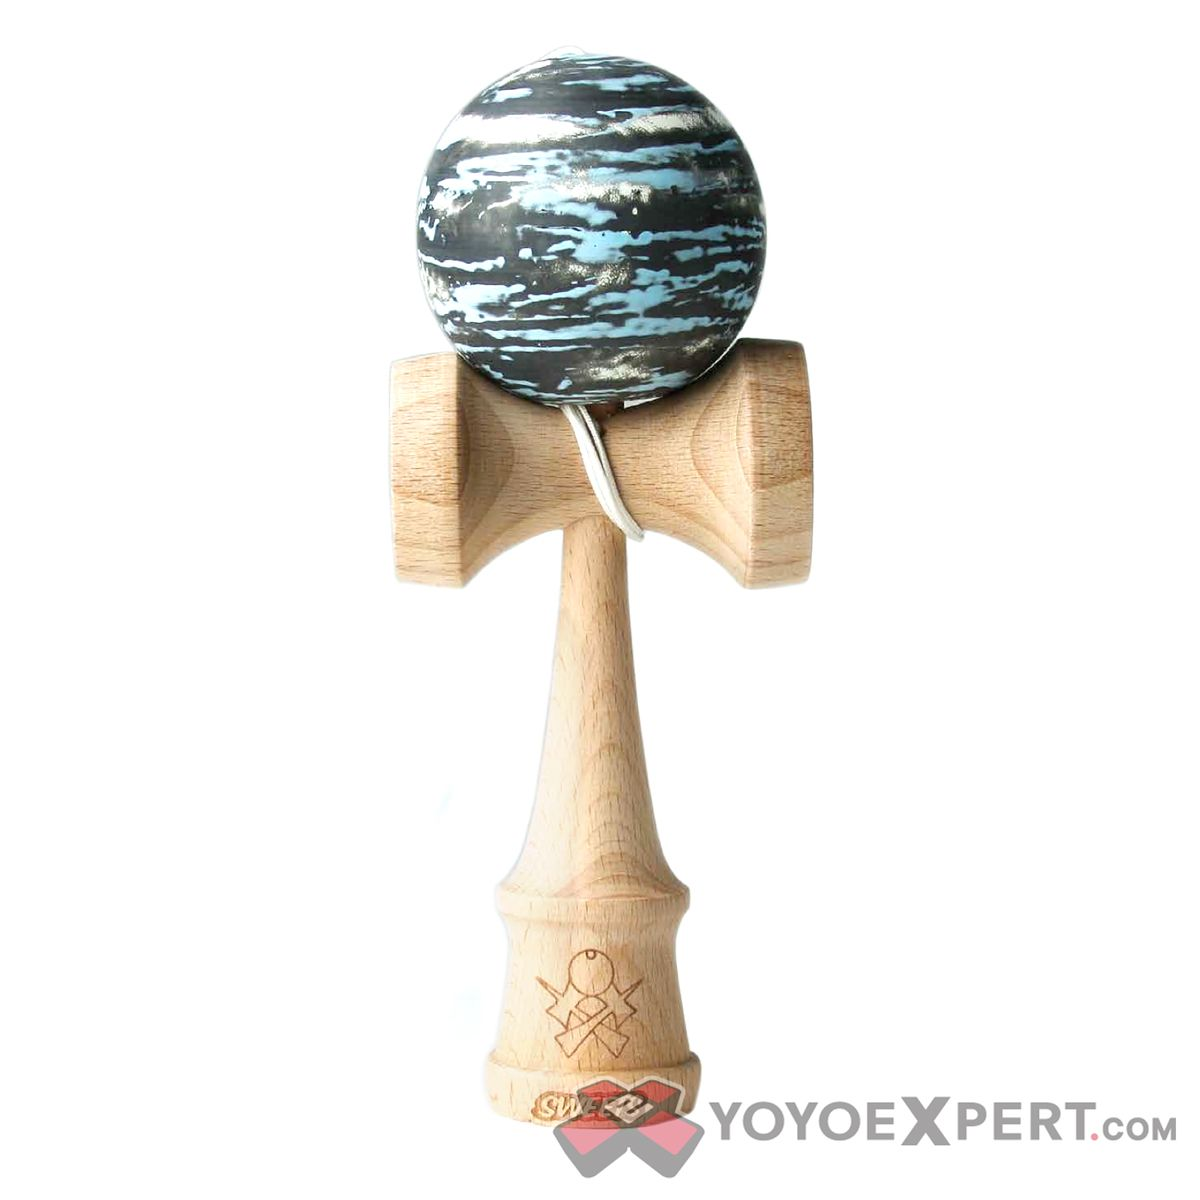 Sweets Kendama Matte Marble Its On Yoyoexpert Com The